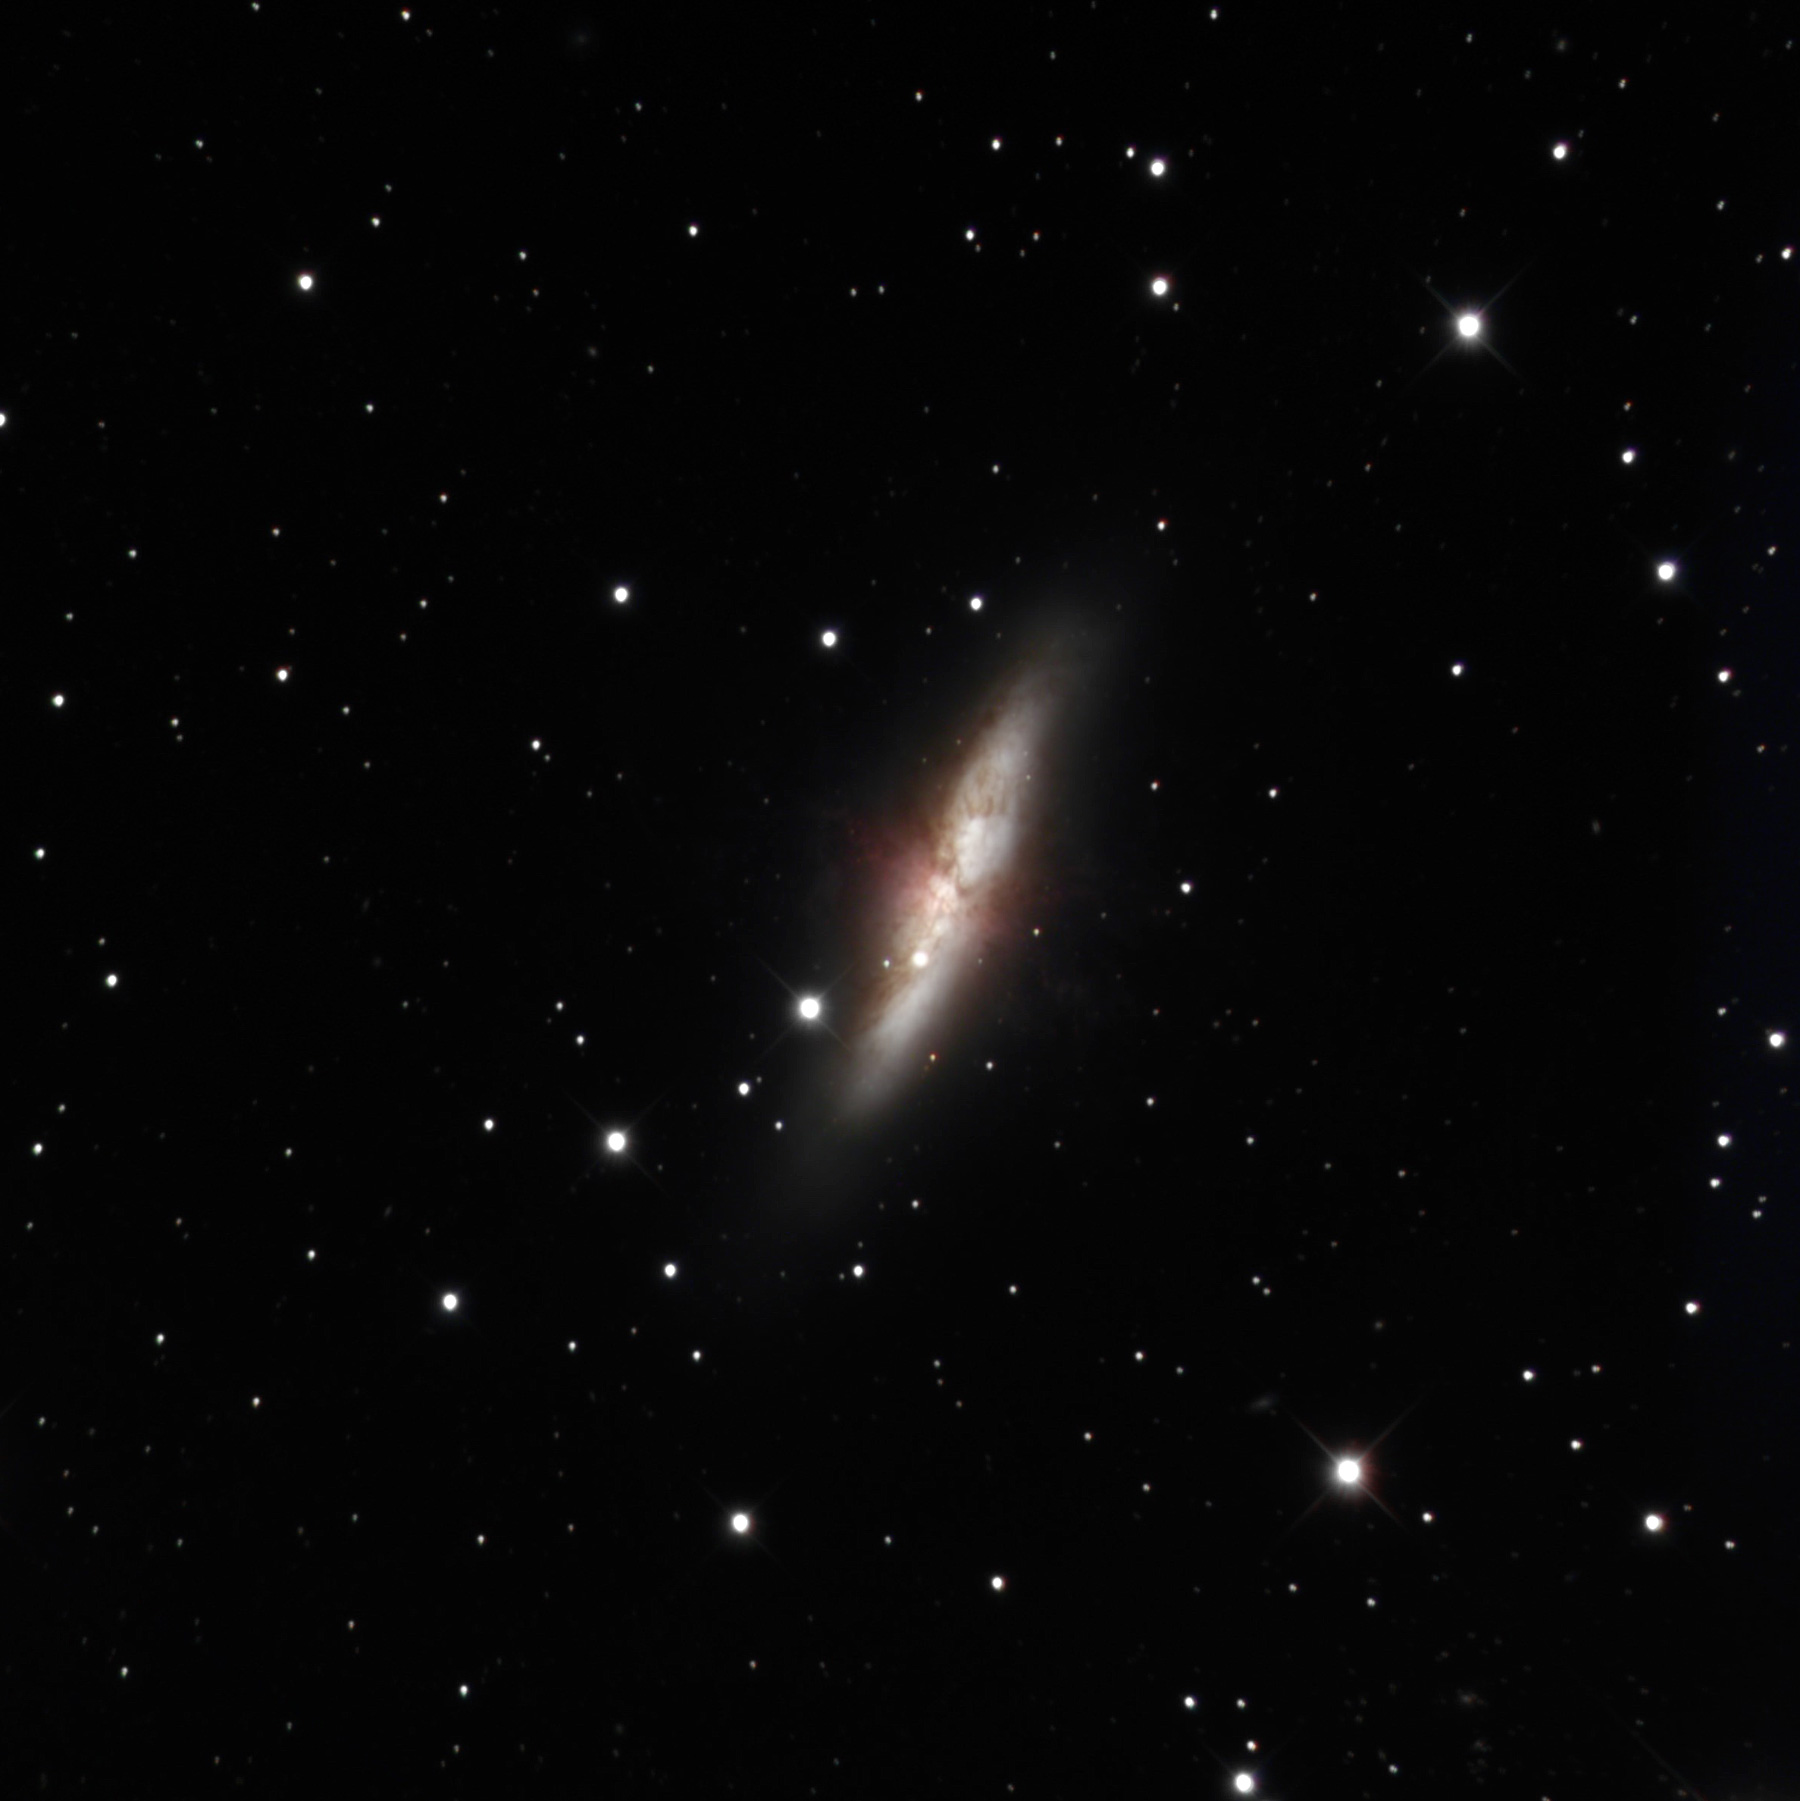 New Supernova in M82 by Mike Hankey